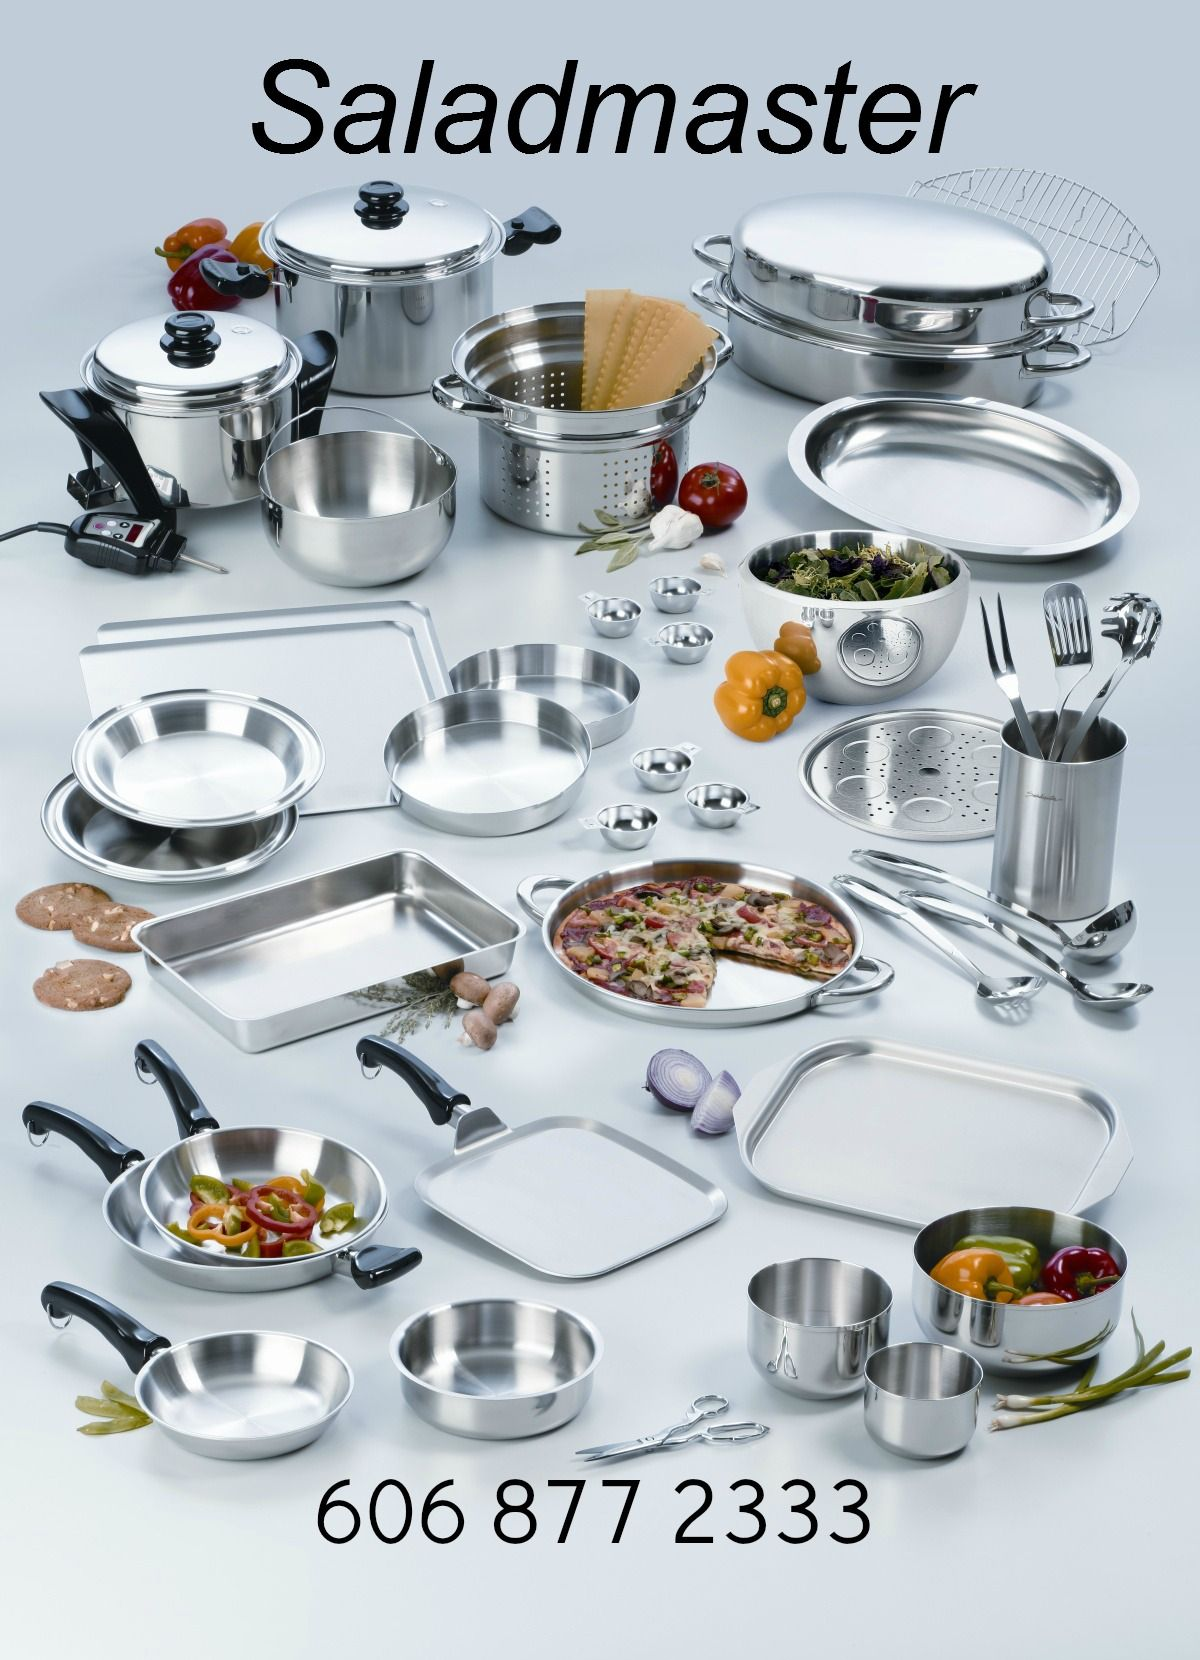 Saladmaster cookware 316 stainless steel it 39 s cookware for Kitchen craft waterless cookware price